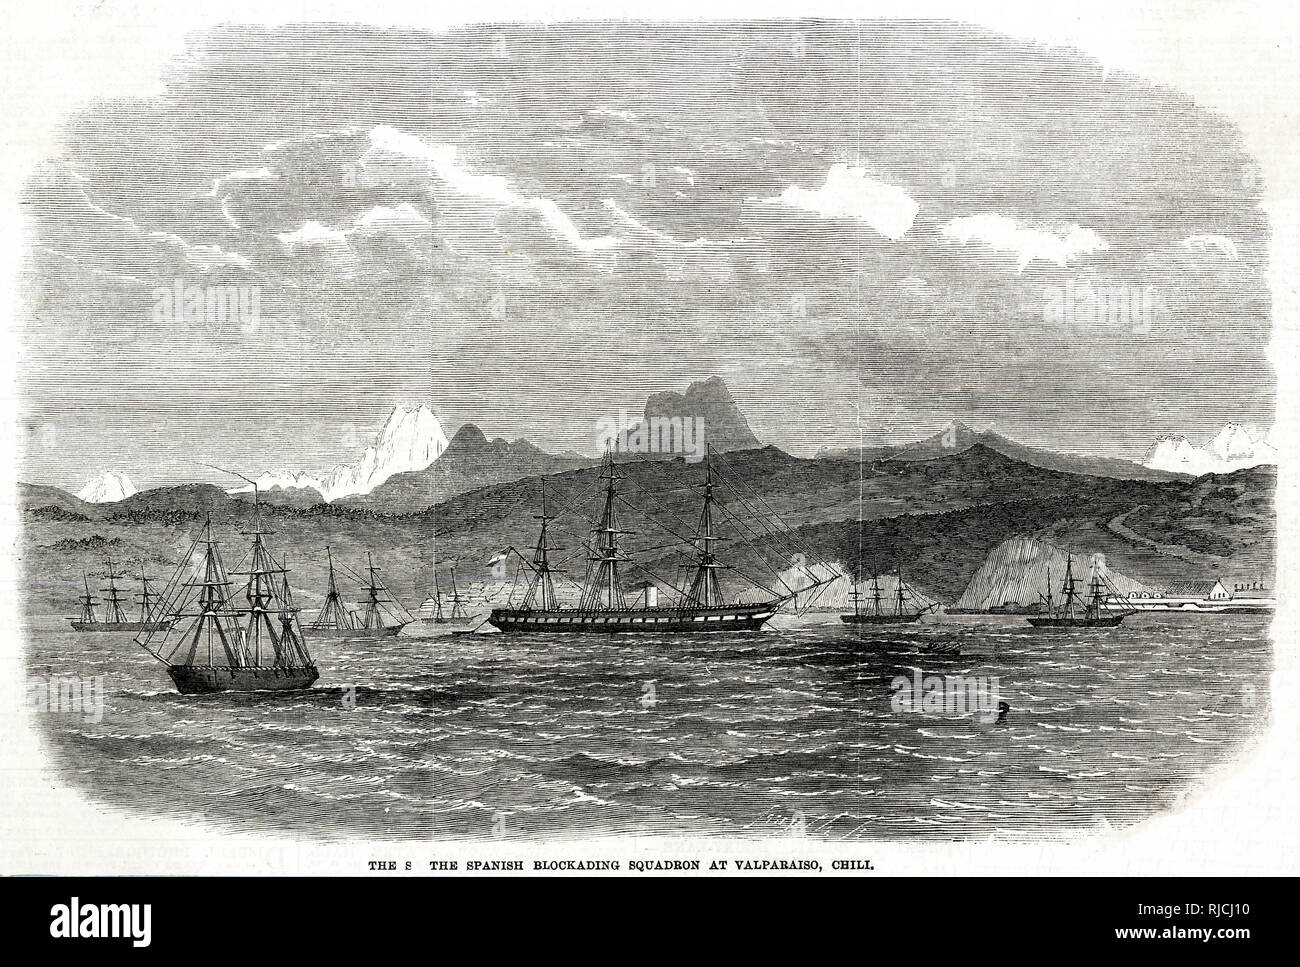 A Spanish squadron blockading the port at Valparaiso, Chile. Several Spanish ships sit broadside to the shore, incapacitating Chilean ships and port industry. This was in response to Chile's refusal to restock Spanish ships with coal during its seizure of Chincha Islands from Peru in 1864. Eventually Peru would form an alliance with Chile, Ecuador, and Bolivia against the Spanish. Stock Photo